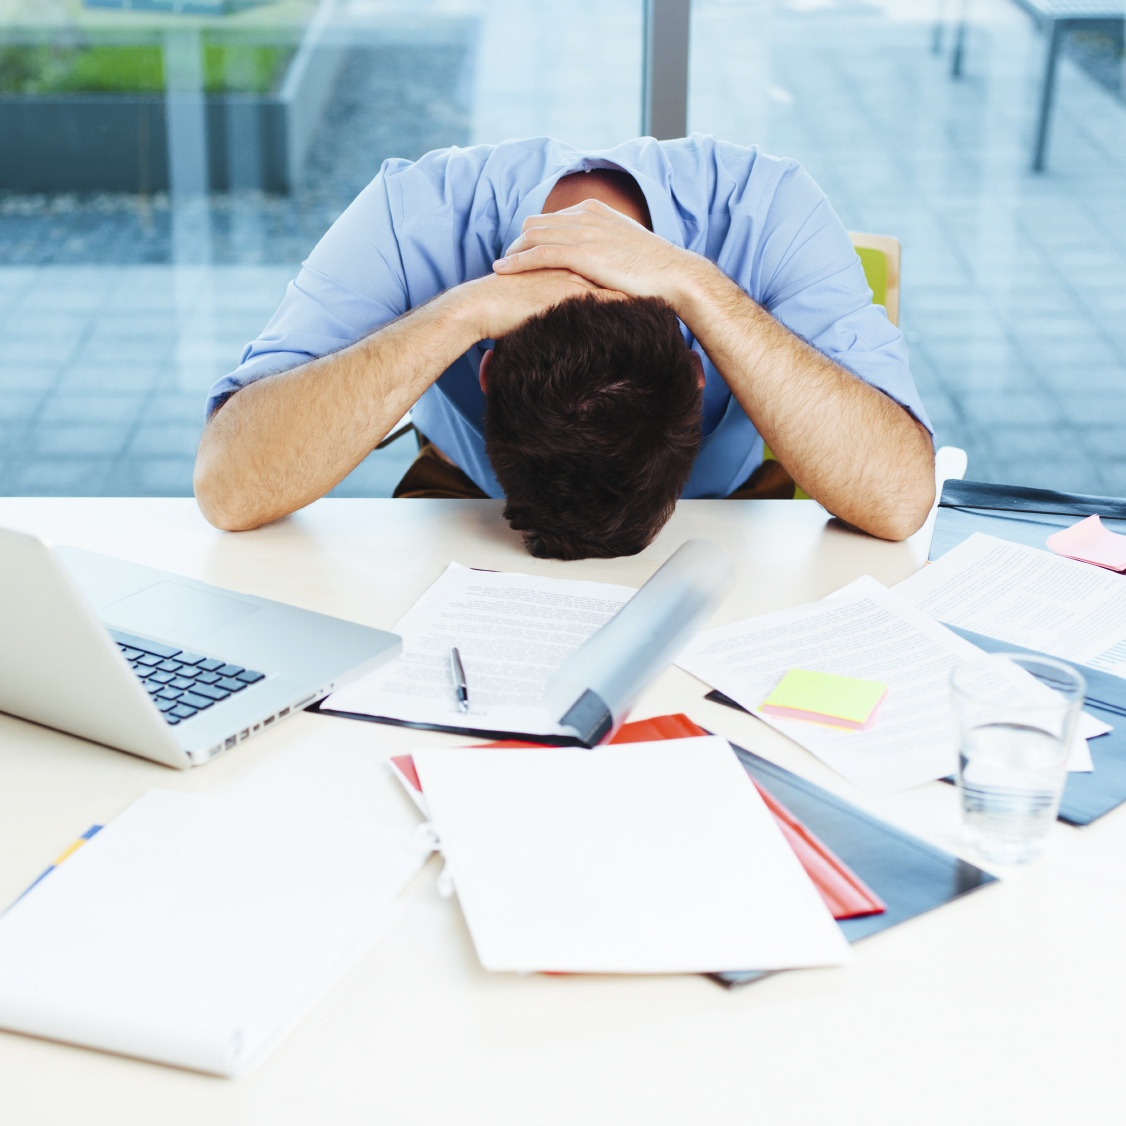 5 Mistakes That Are Killing Productivity